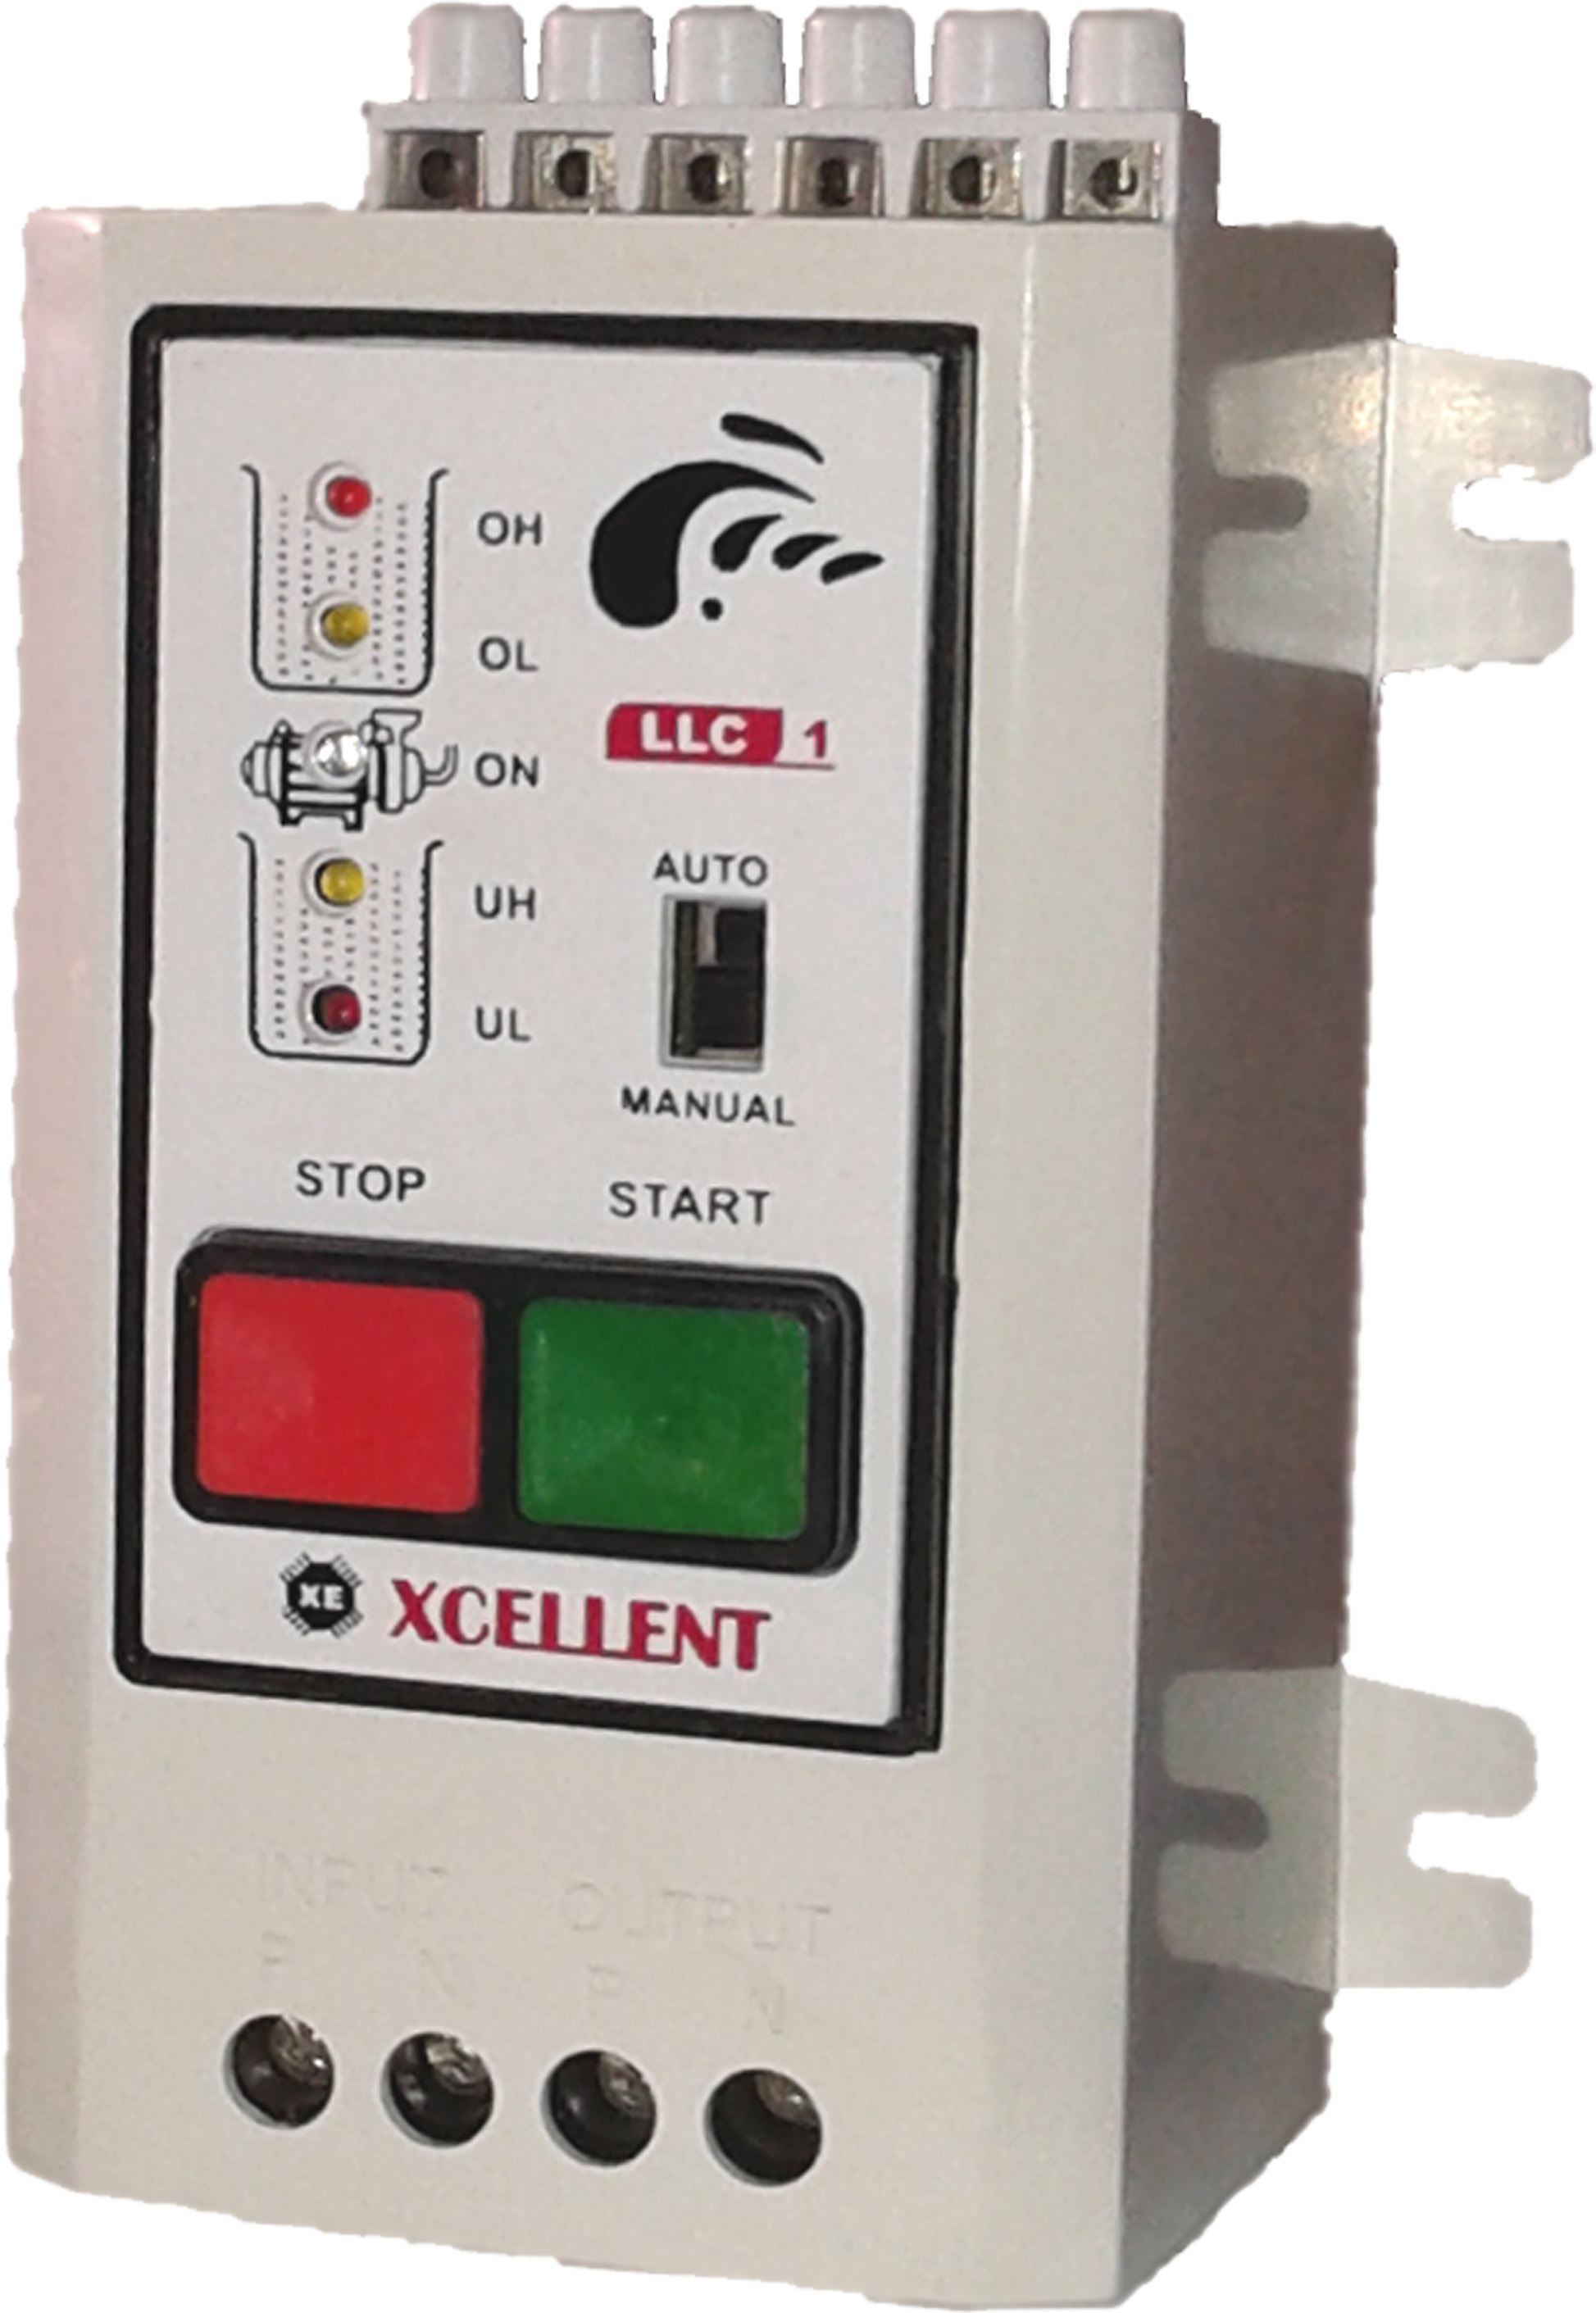 Electrical Automatic Water Level Controller Manufacturer From Indicator Electronic Circuit That Uses A 7segment Display